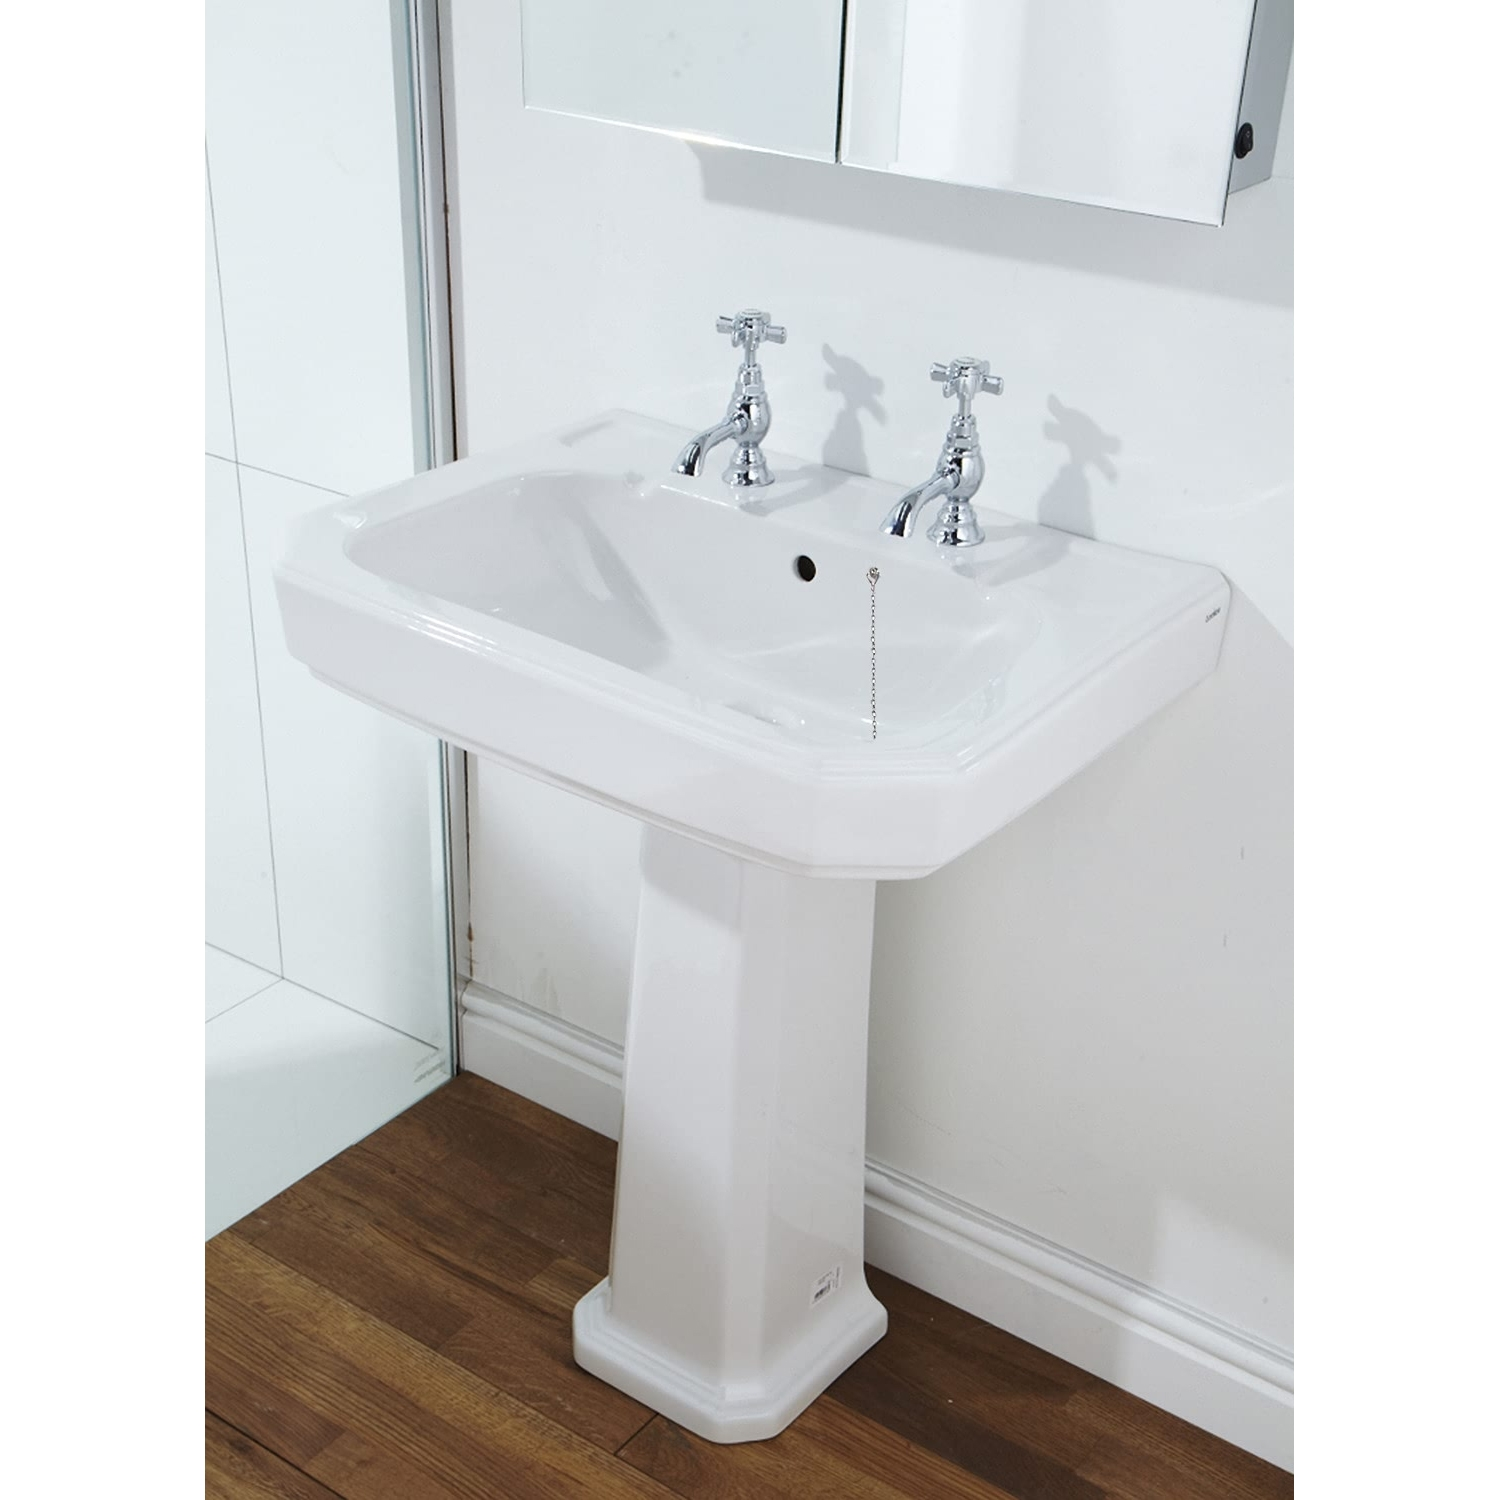 Verona Hamilton Basin with Full Pedestal 630mm Wide - 2 Tap Hole